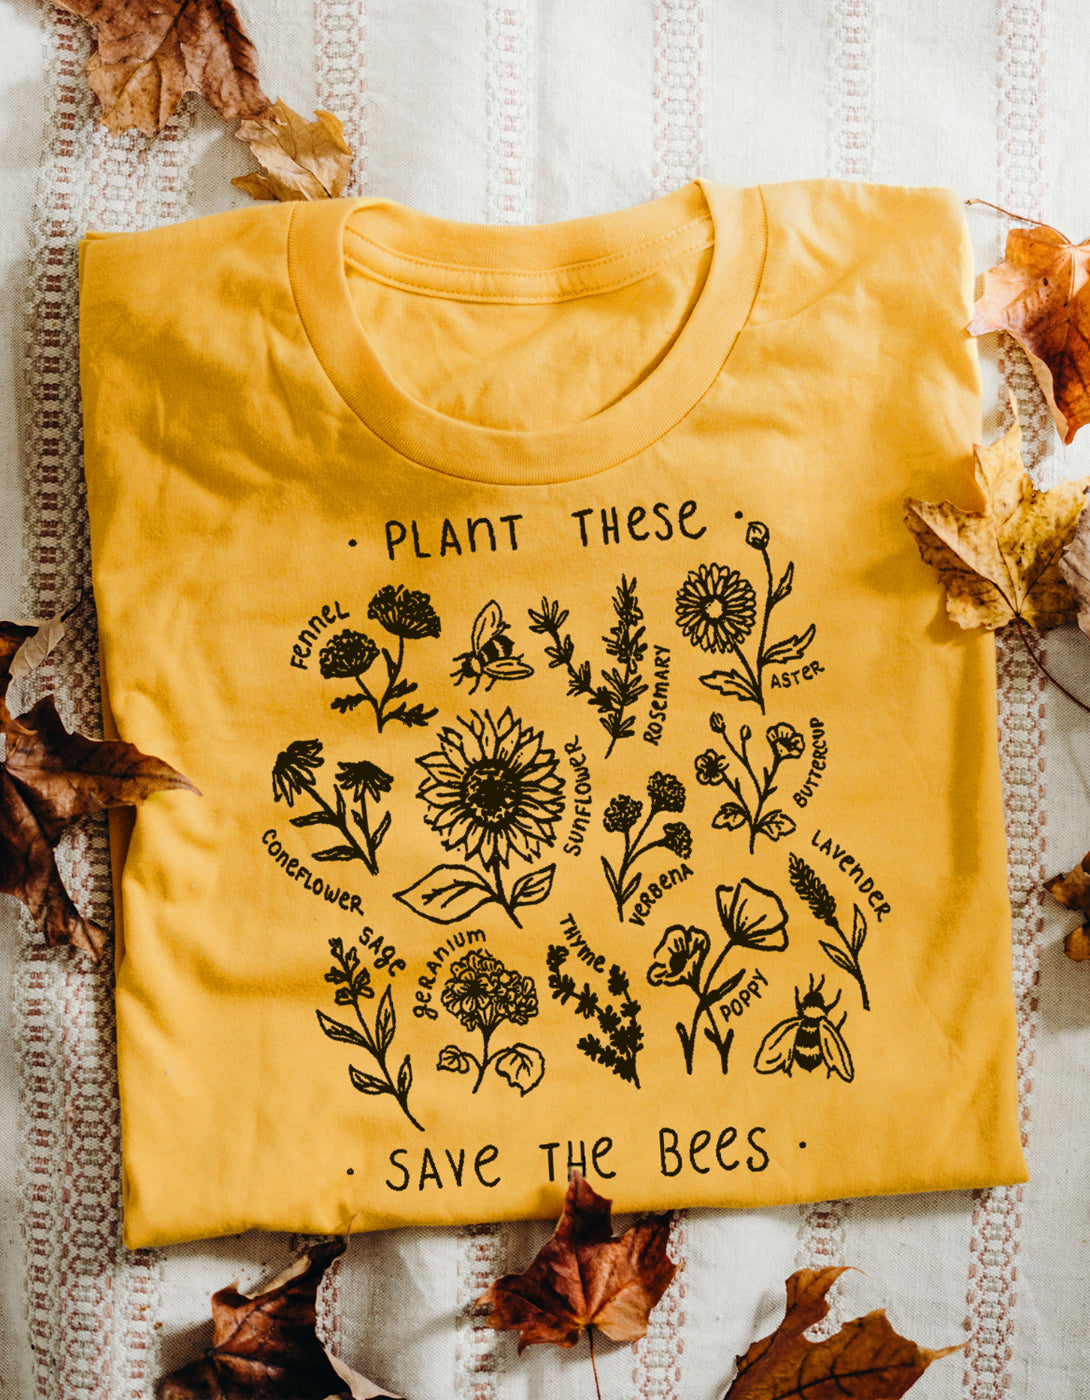 00914698 Plant These, Save The Bees - Tee - Wholesome Culture